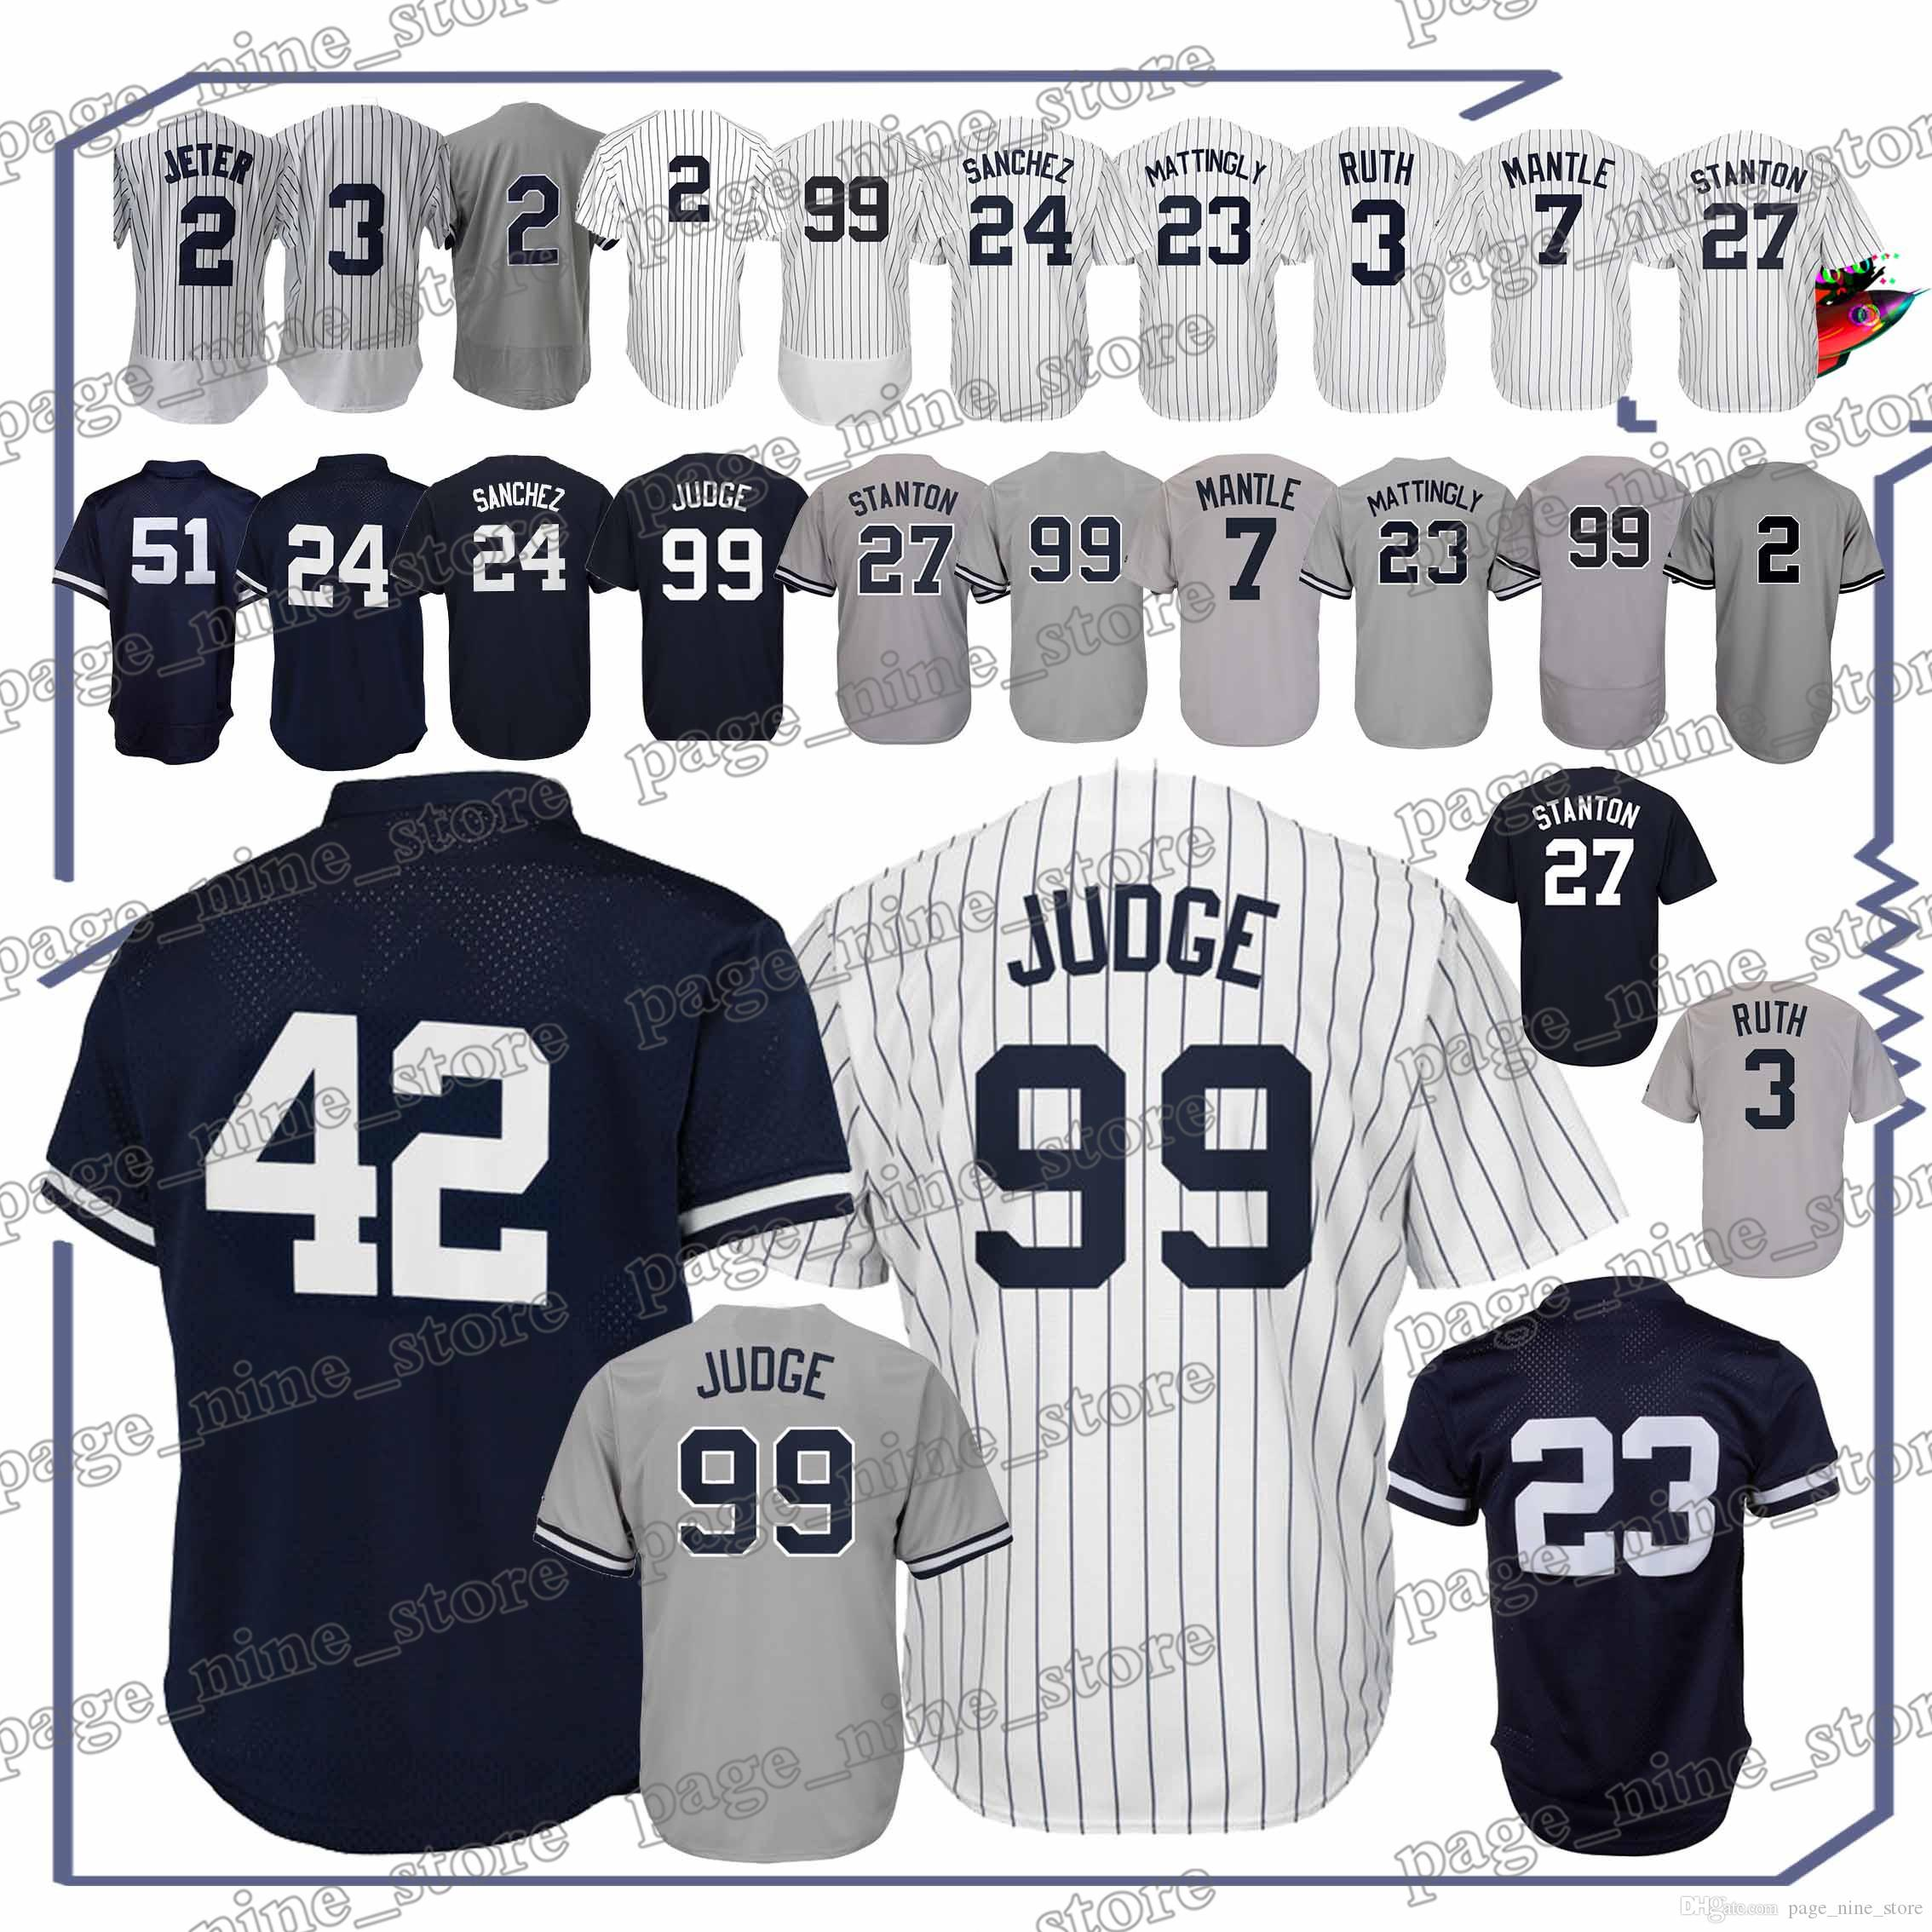 finest selection 742bb 9abb5 New York Yankees baseball jerseys 99 Aaron Judge 42 Mariano Rivera 23 Don  Mattingly 51 Bernie Williams jerseys